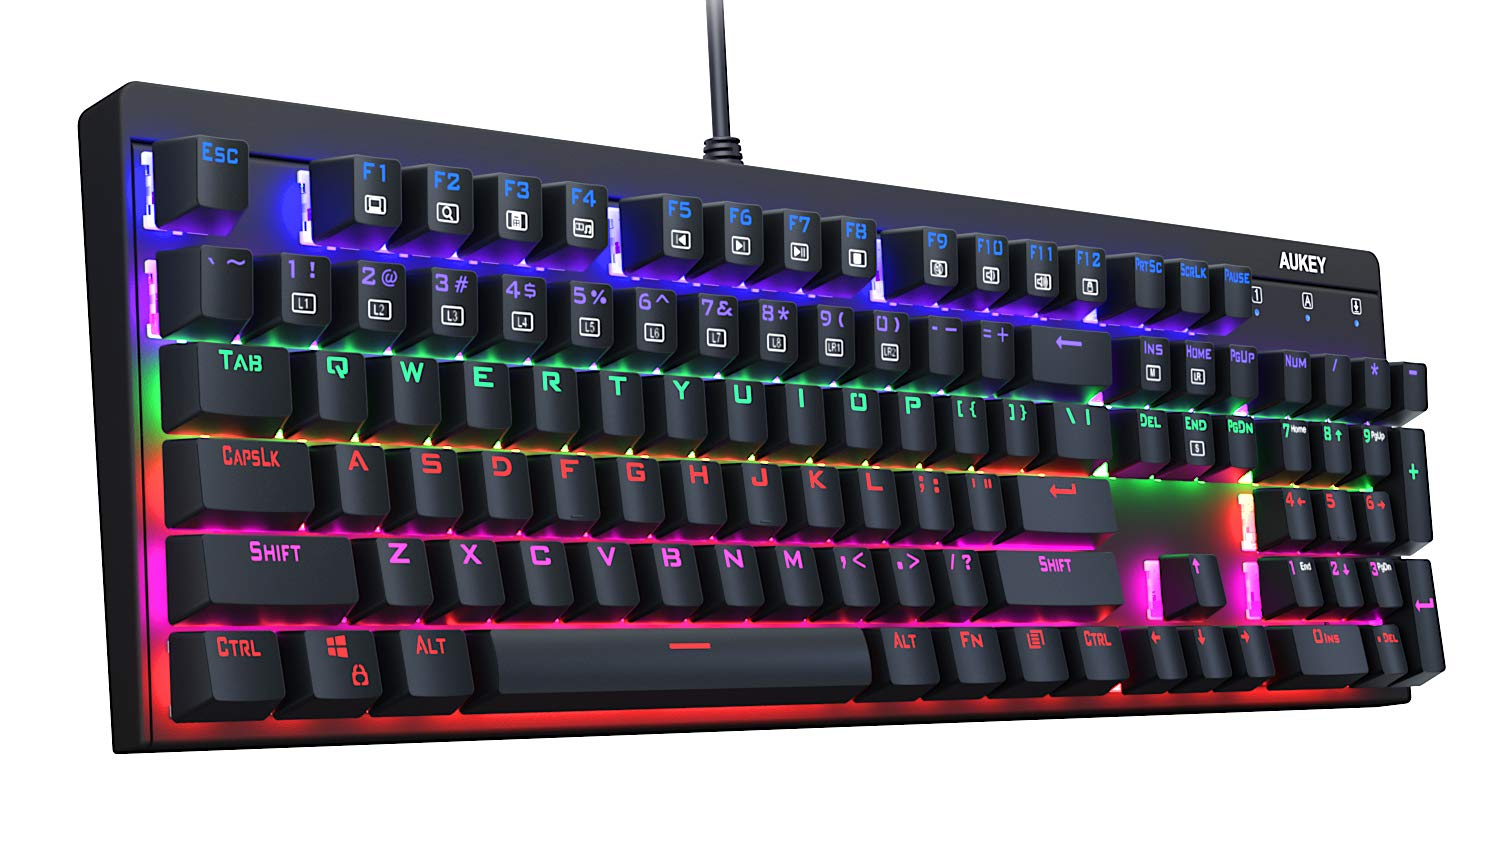 AUKEY Mechanical Keyboard LED Backlit Gaming Keyboard with Blue Switches, 104 Keys 100% Anti-ghosting with Metal Top Panel and Water-Resistant Design for PC and Laptop Gamers, Black